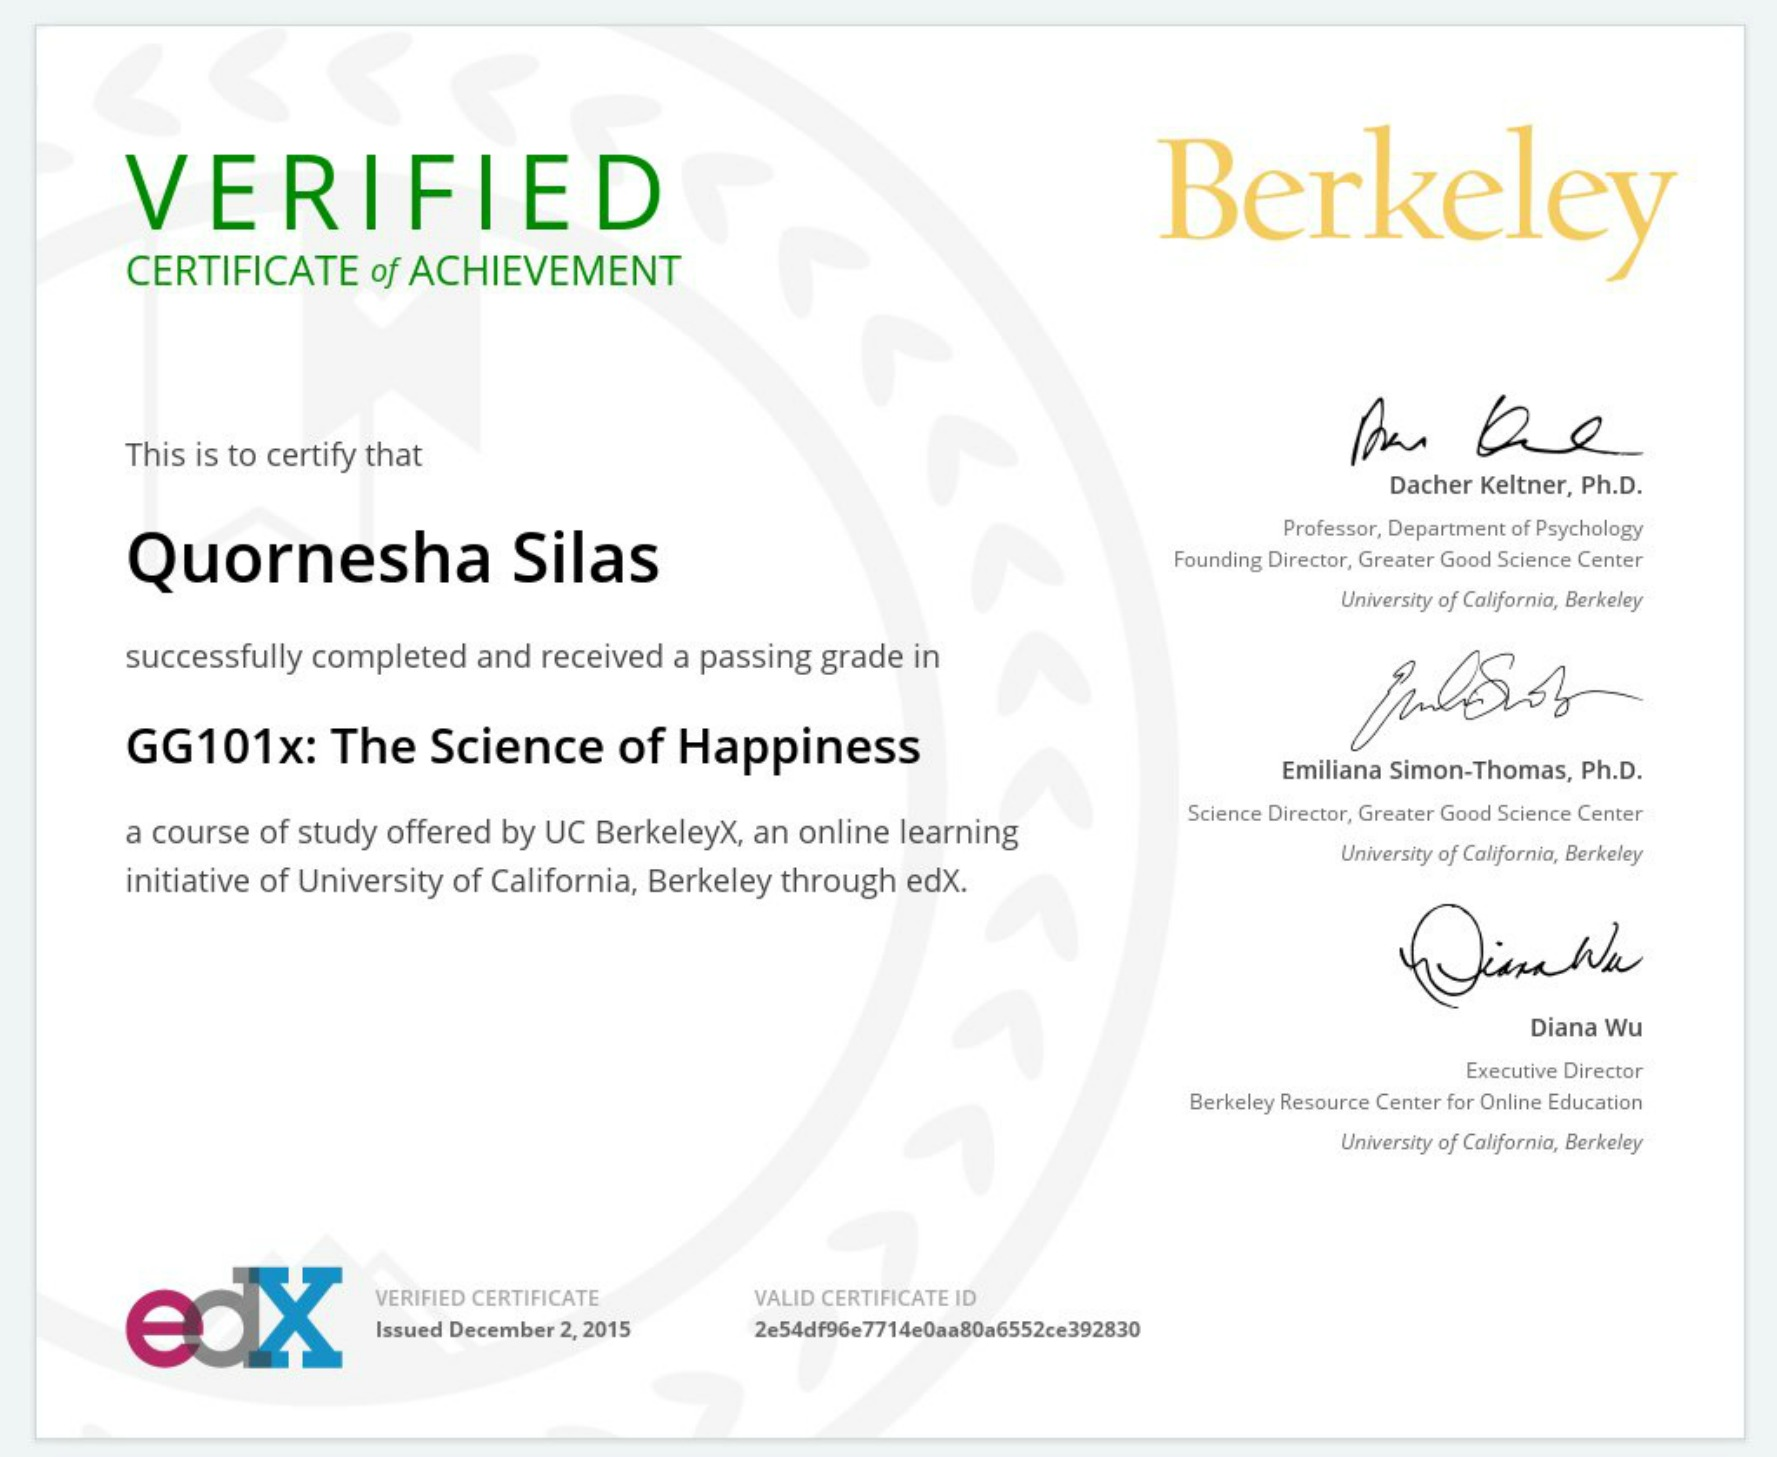 Fresh pics of berkeley birth certificate business cards and resume credentials whispers channels prophecies visions credentials whispers channels prophecies visions from berkeley birth certificate aiddatafo Choice Image